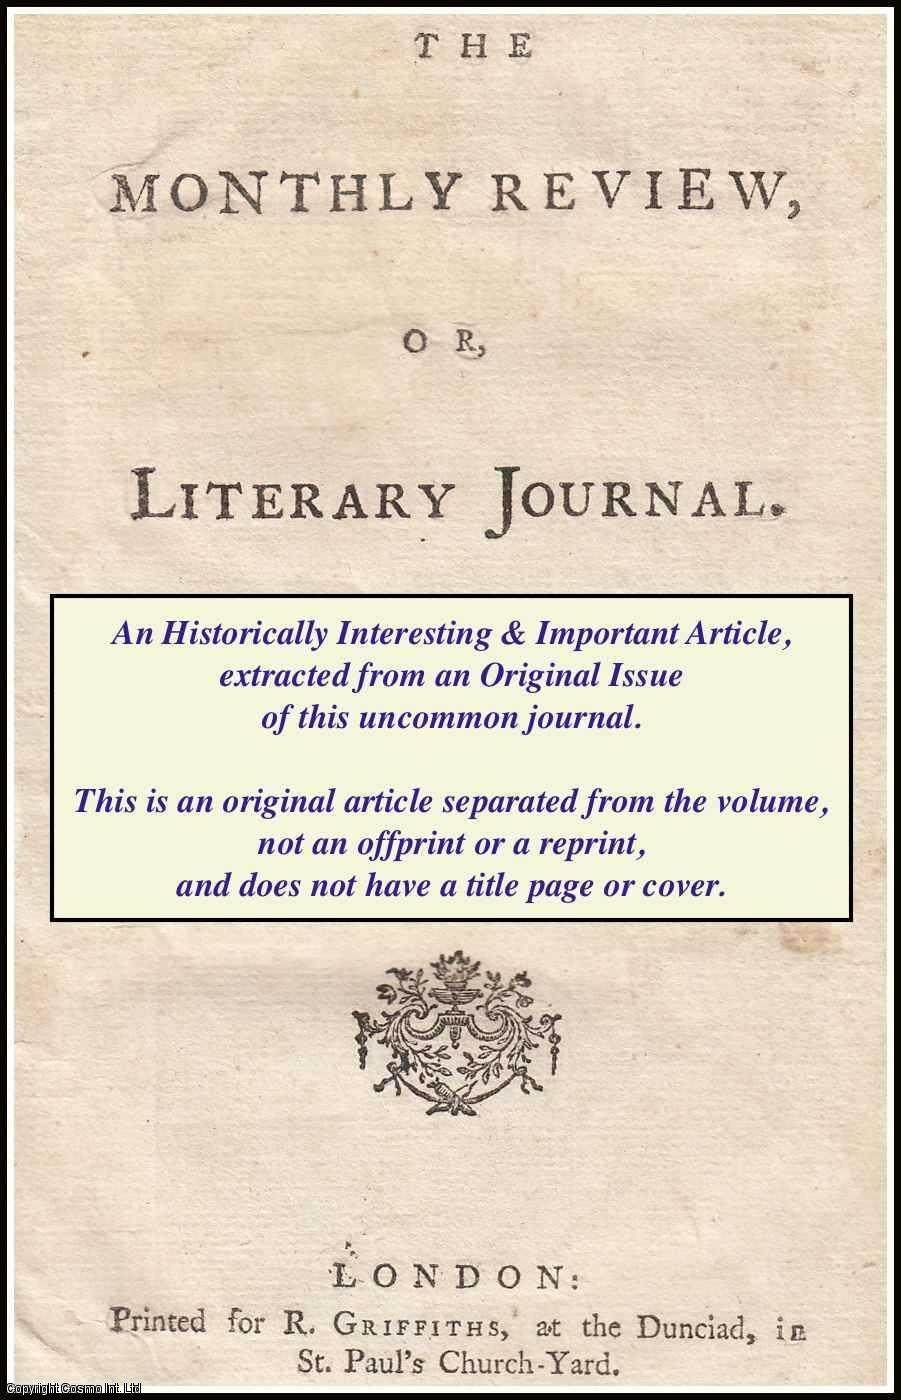 --- - Historical Extracts relating to Laws, Customs, Manners, Trade, Literature, Arts and Sciences. By M. Garnier. A rare original article from the Monthly Review, 1770.